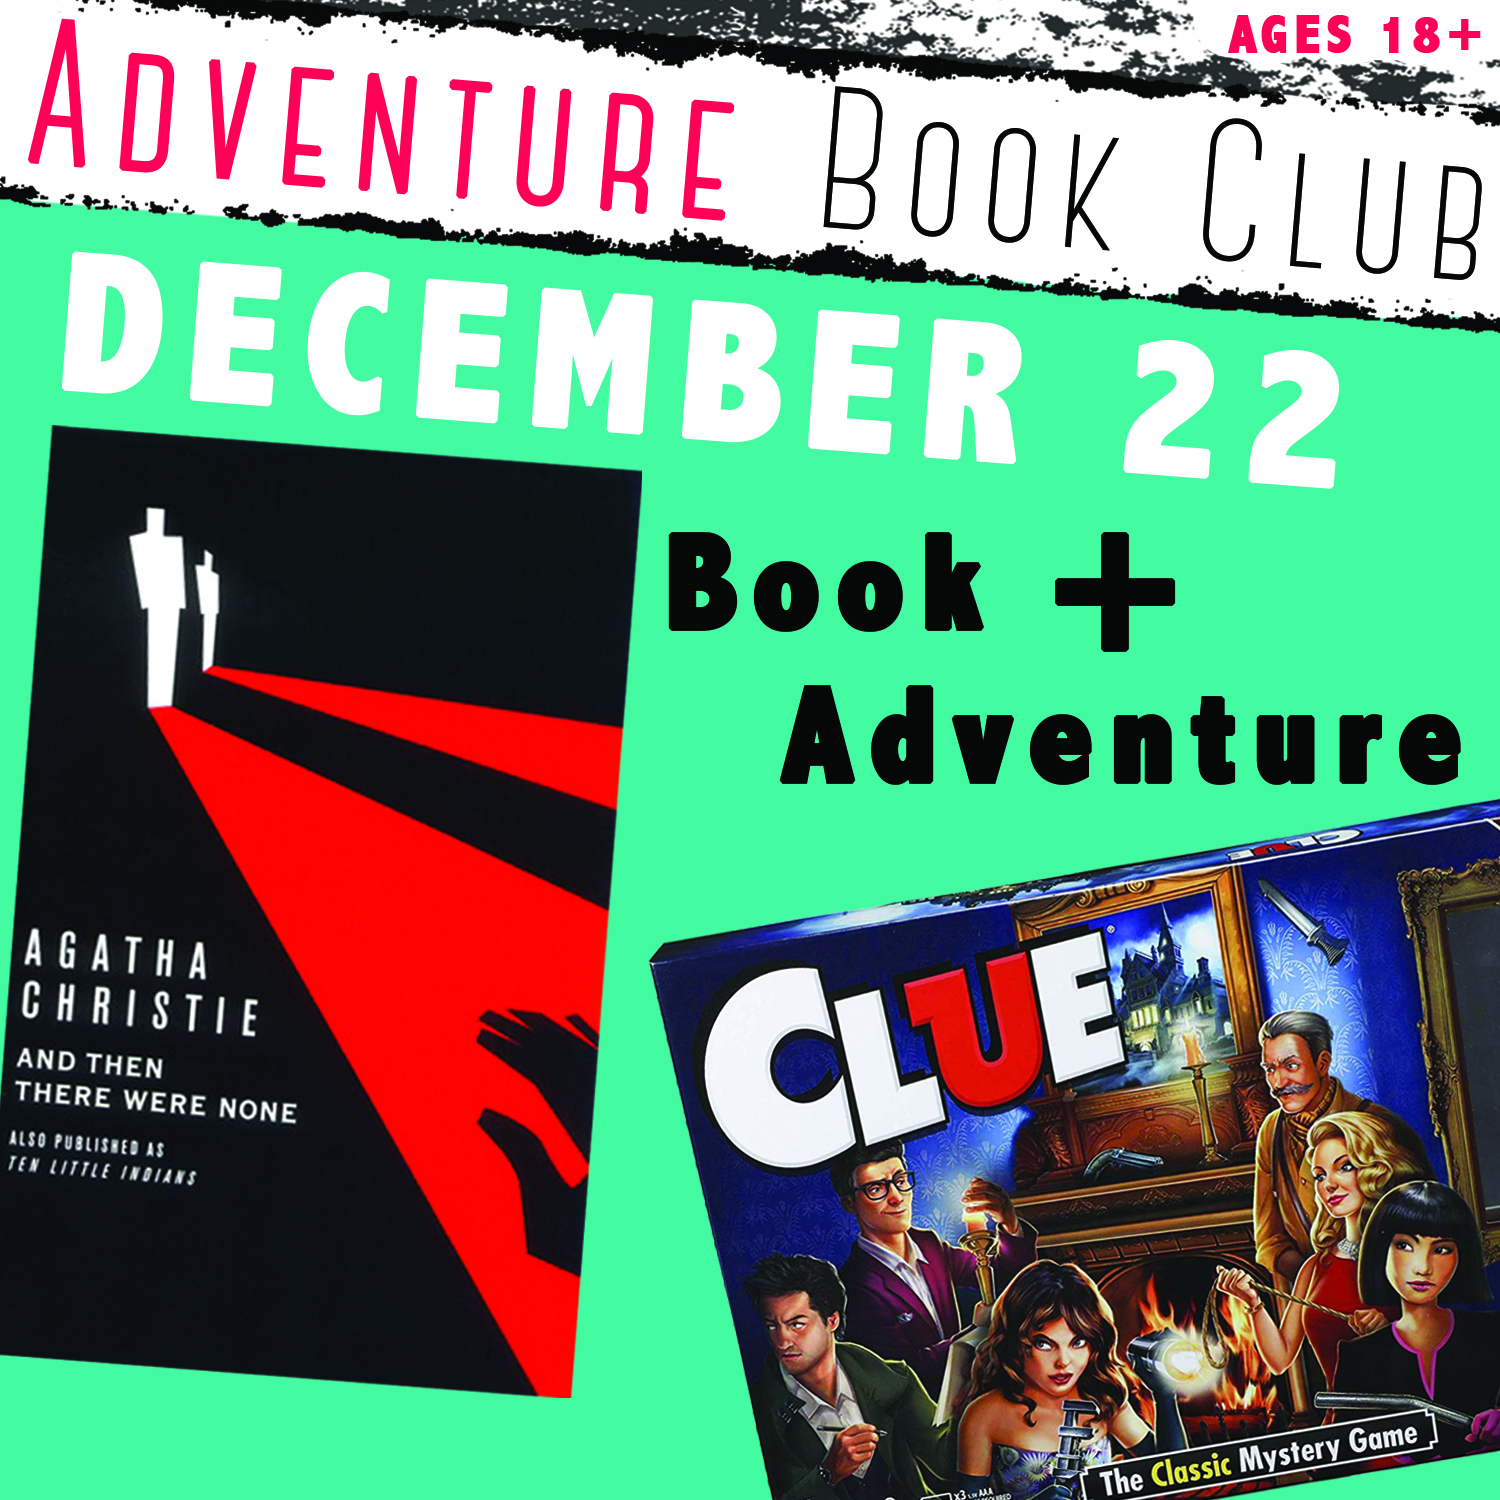 Adventure Book Club: And Then There Were None